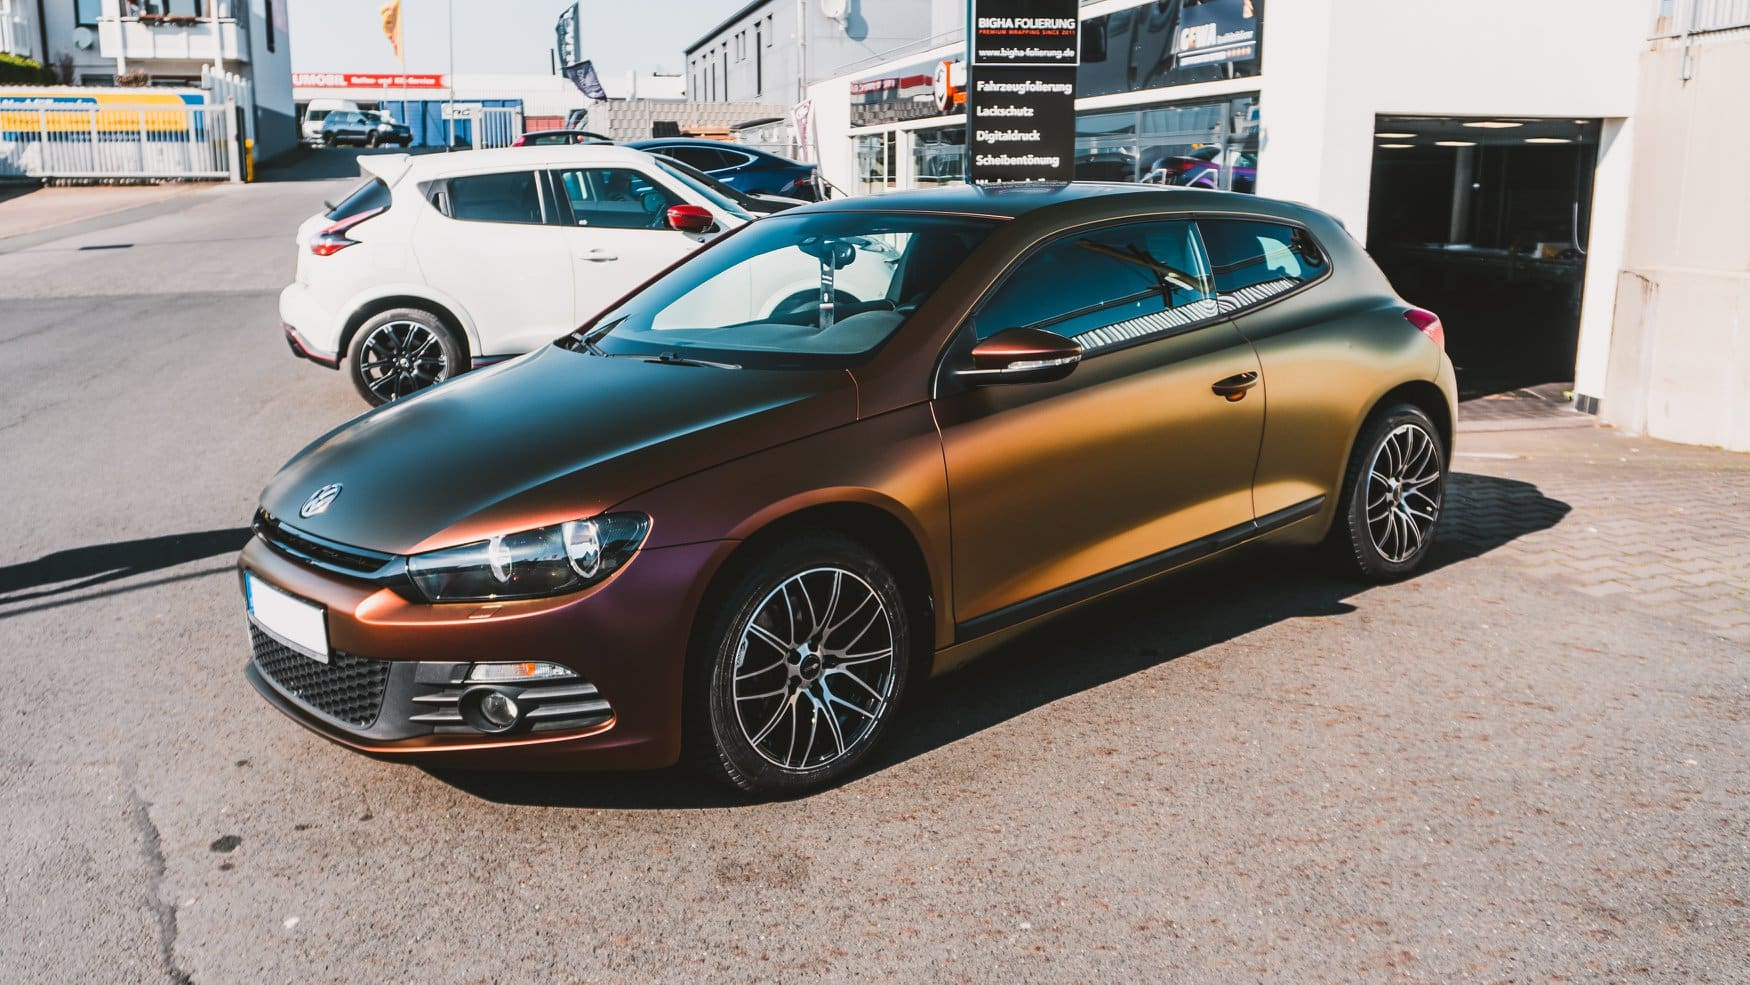 VW Scirocco Avery ColorFlow Rsining Sun Folierung Vollfolierung